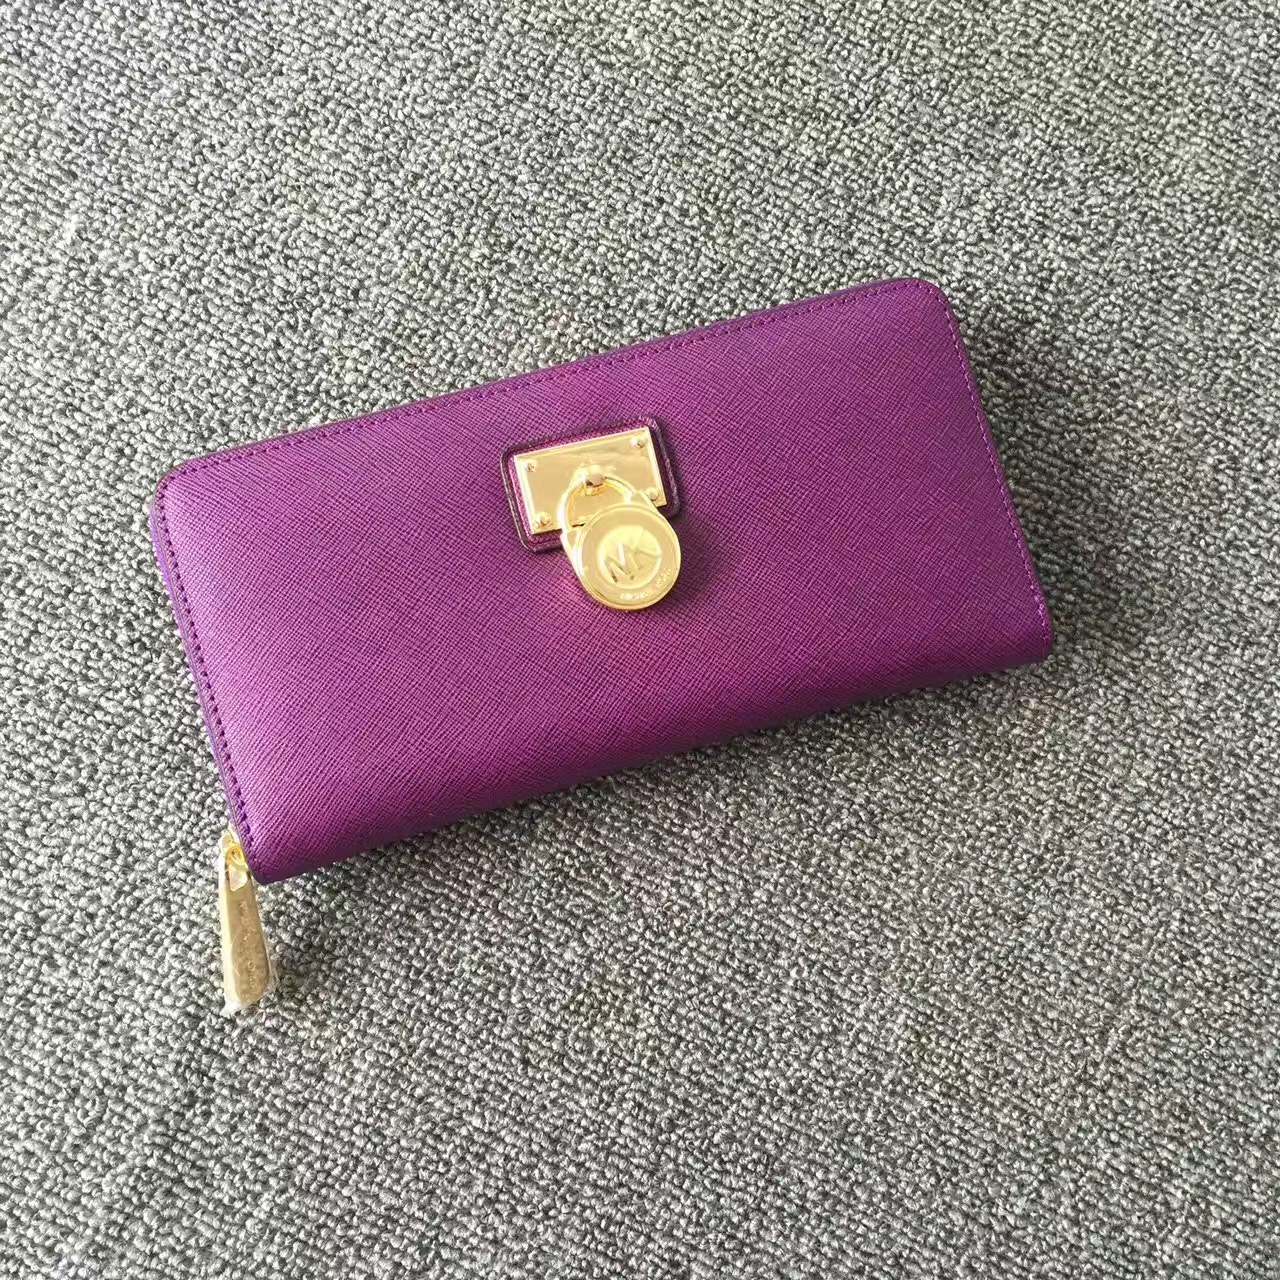 2017 New Michael Kors Lock Women Small Wallets Purple